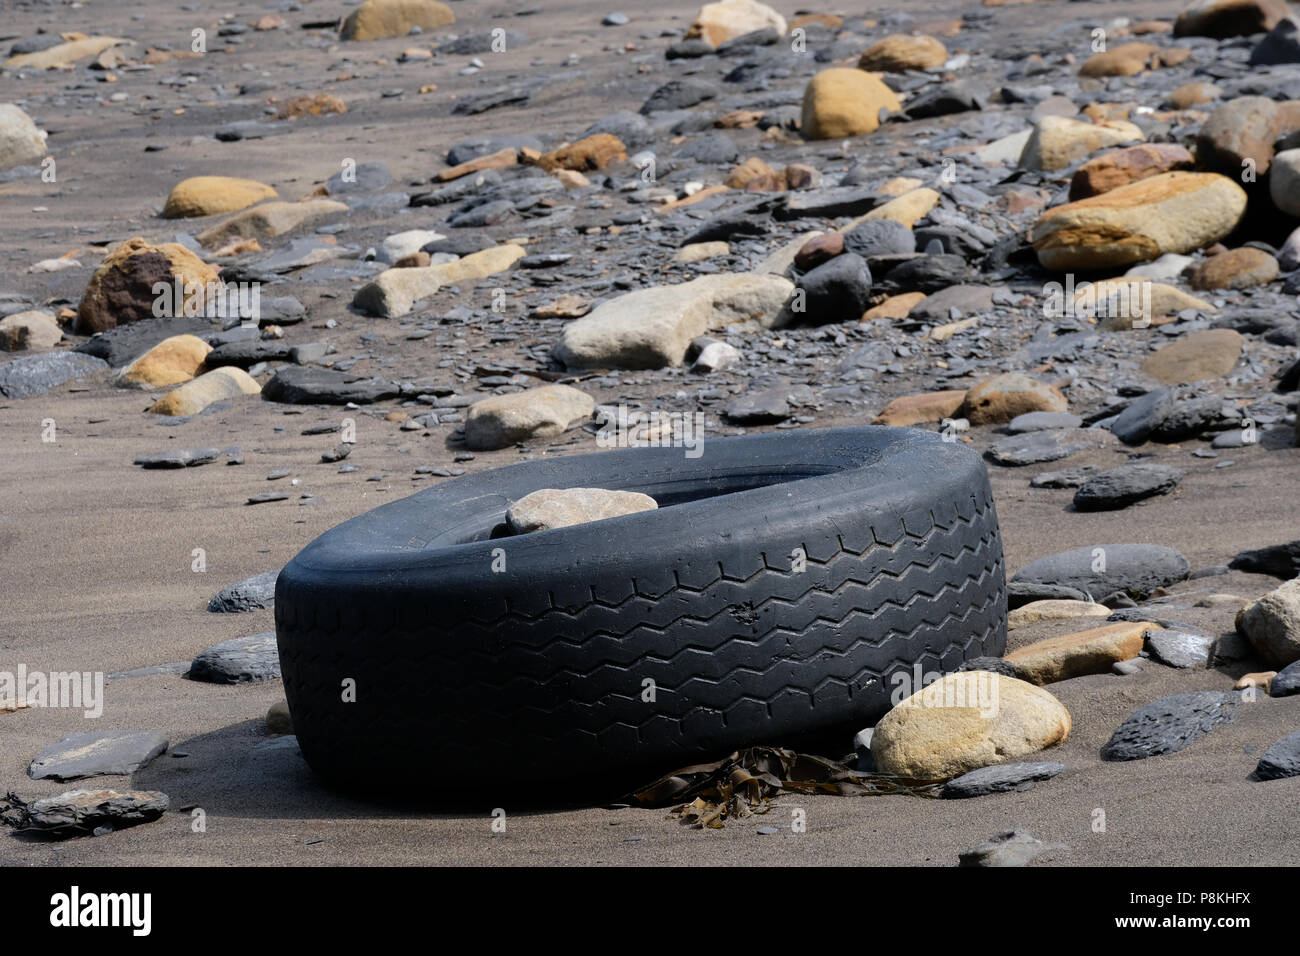 Plastic waste and rubbish washed up on the beaches of Yorkshire's Heritage Coast - Stock Image